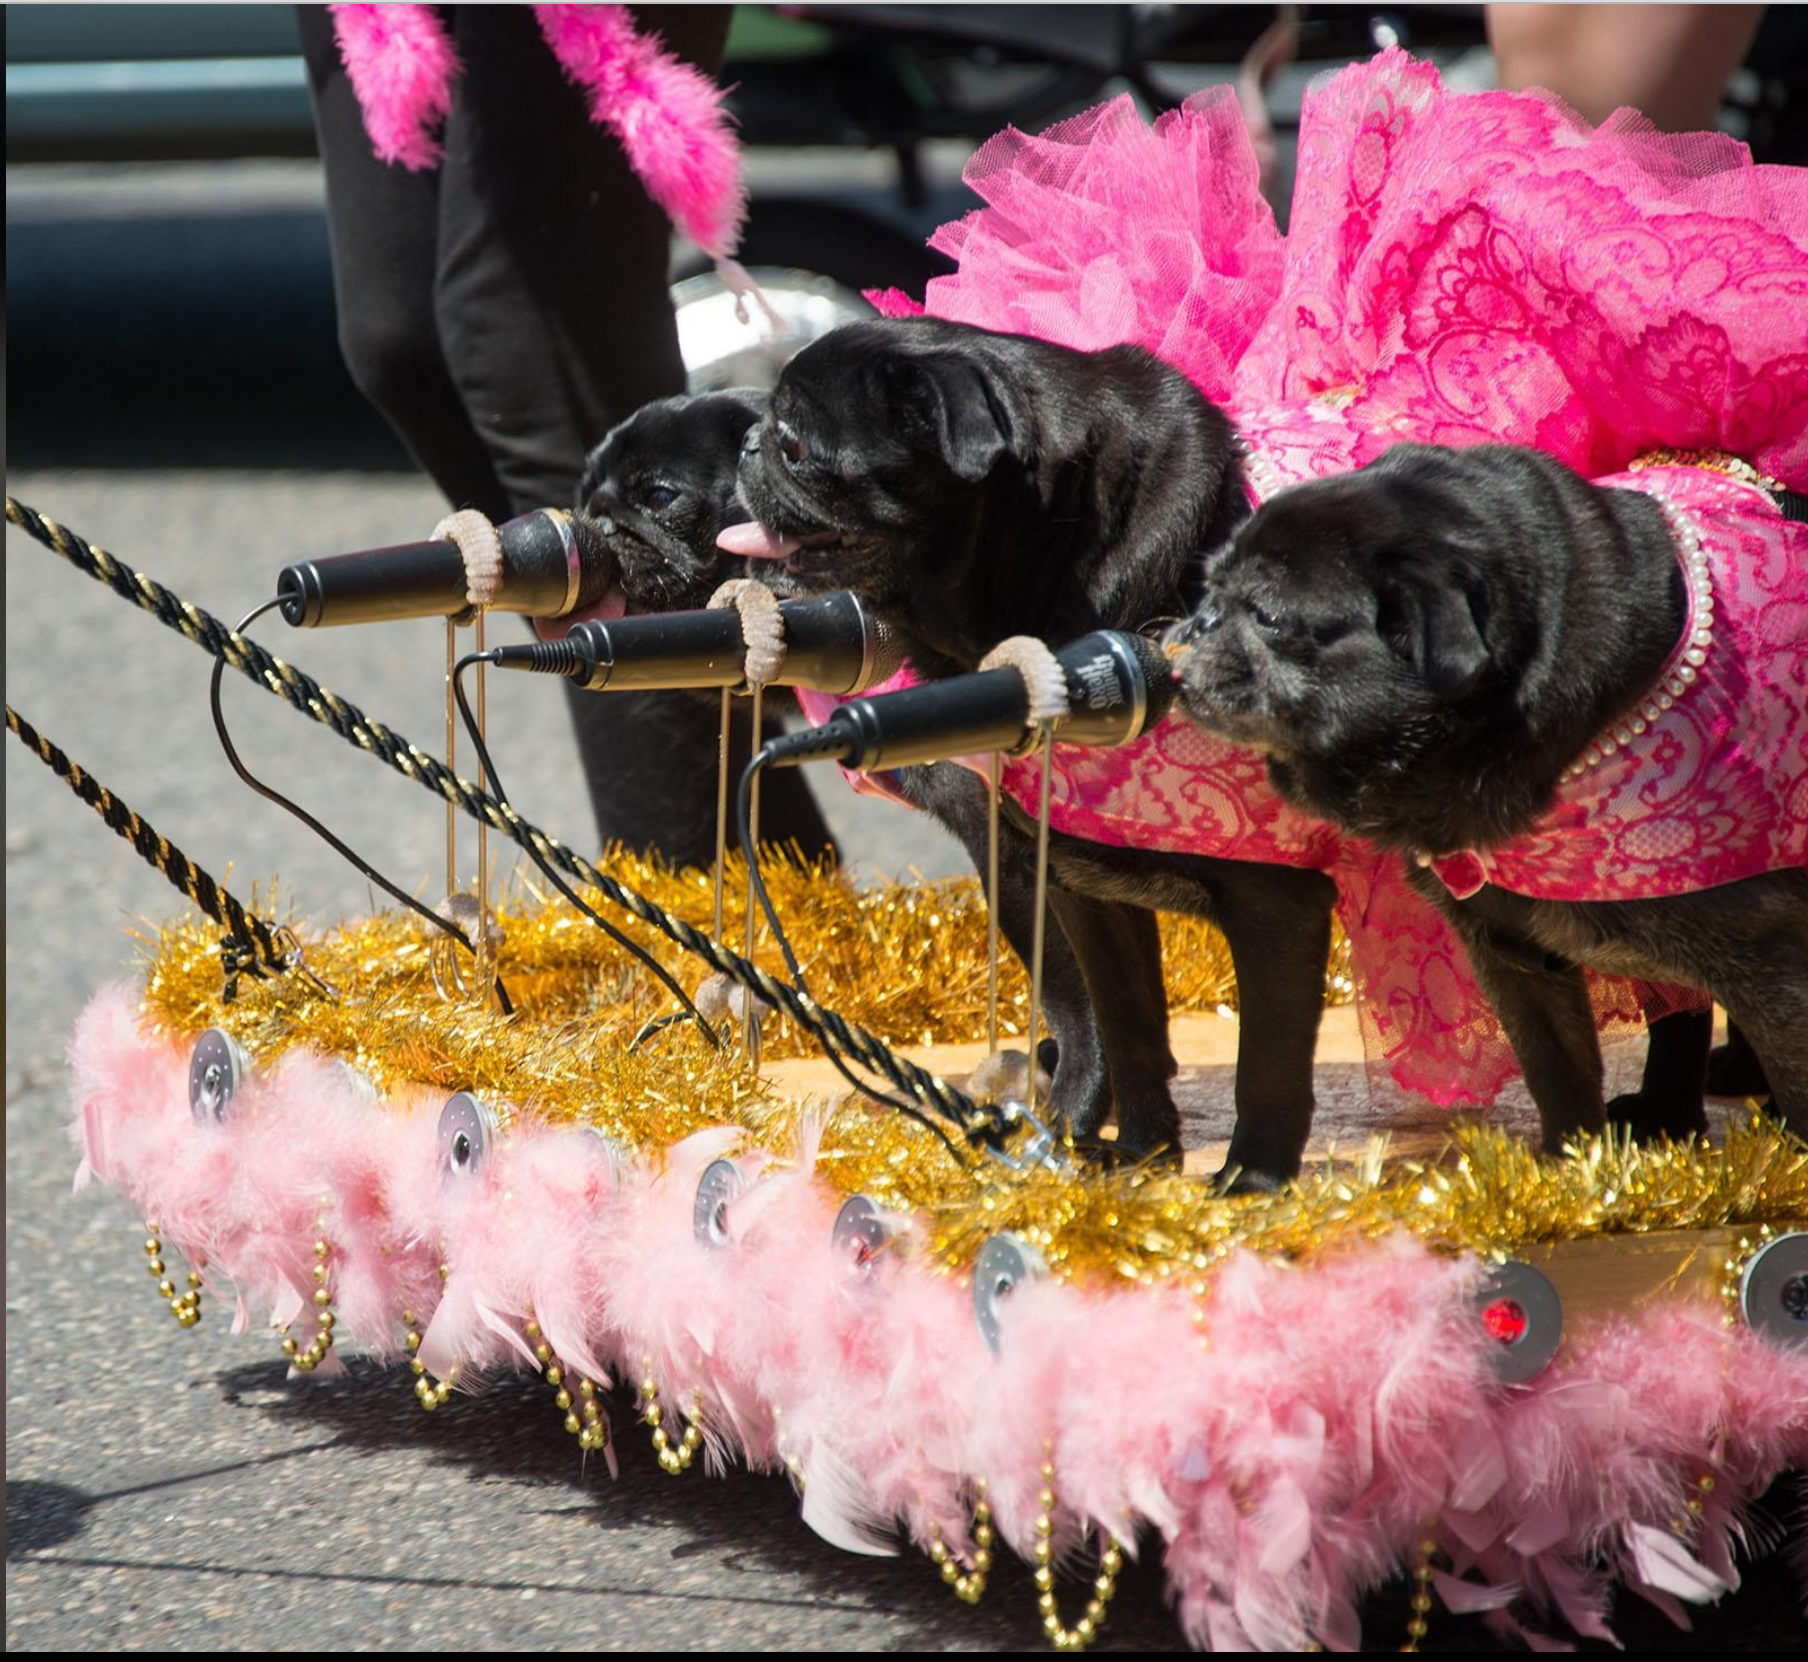 My girls winning first place at the PDX Pug Crawl on Sunday. So proud! http://ift.tt/2rJzKgA